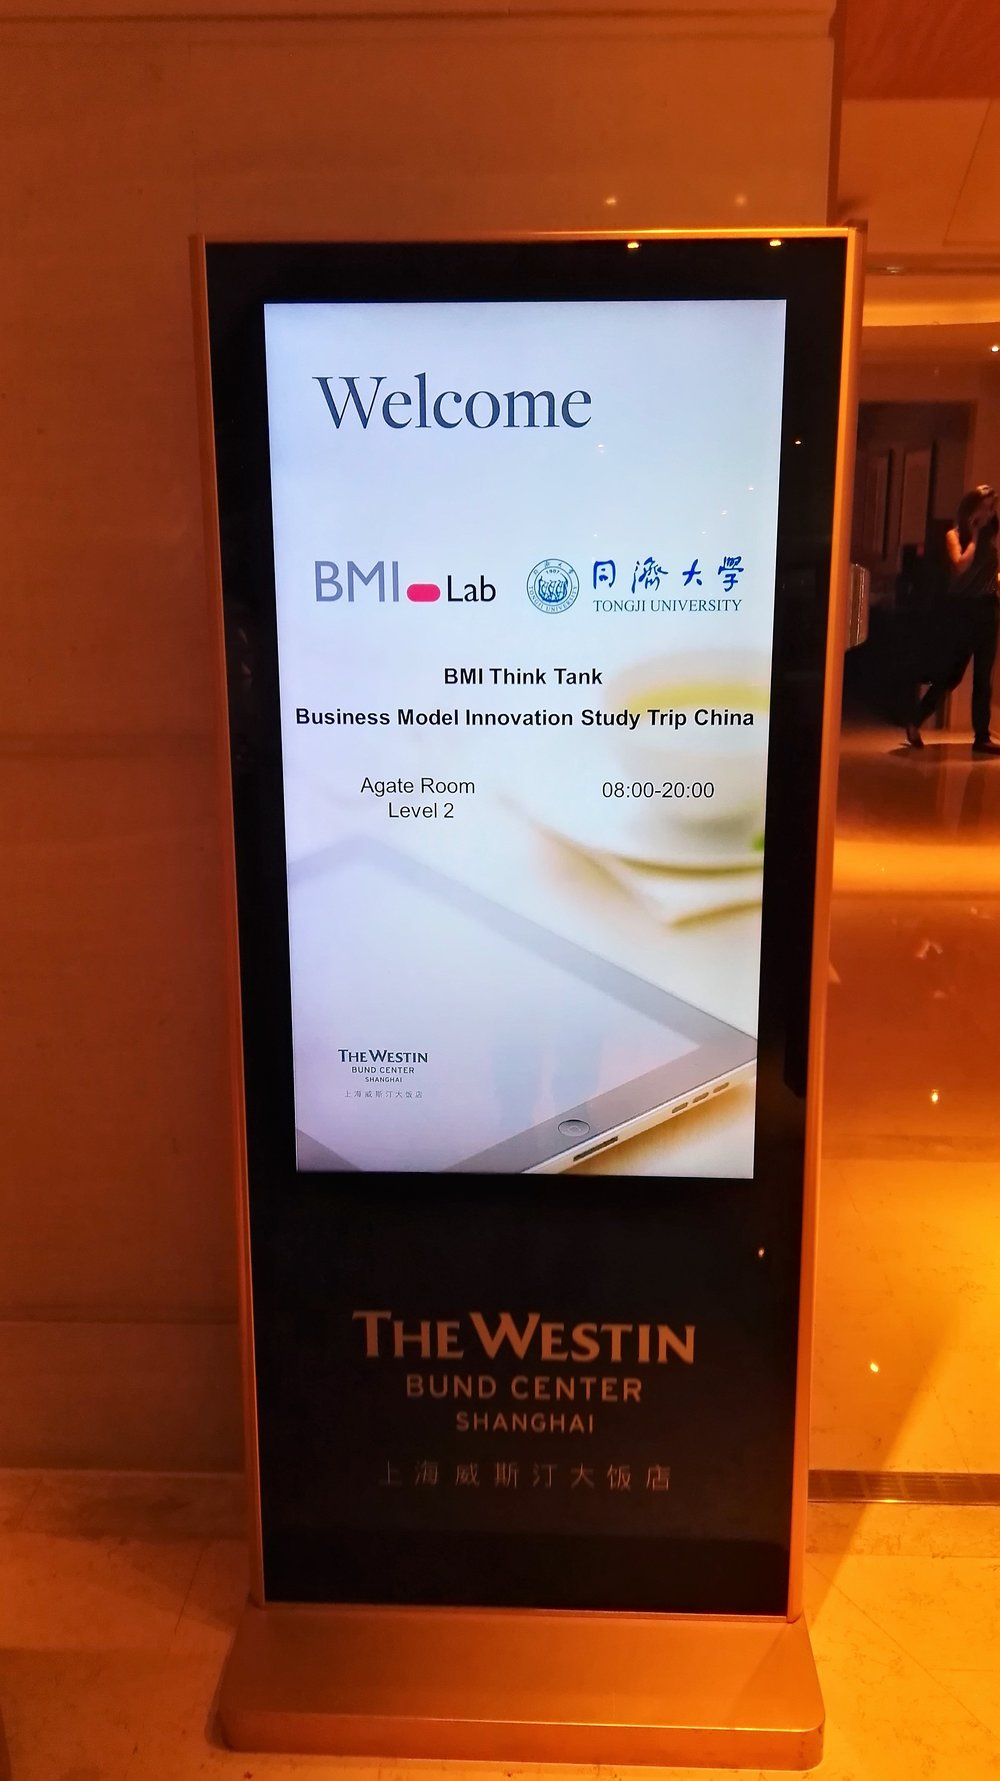 BMI Think Tank travelled to China for a Business Model Innovation Study Trip. A great opportunity to understand how China has evolved into a global innovation power.